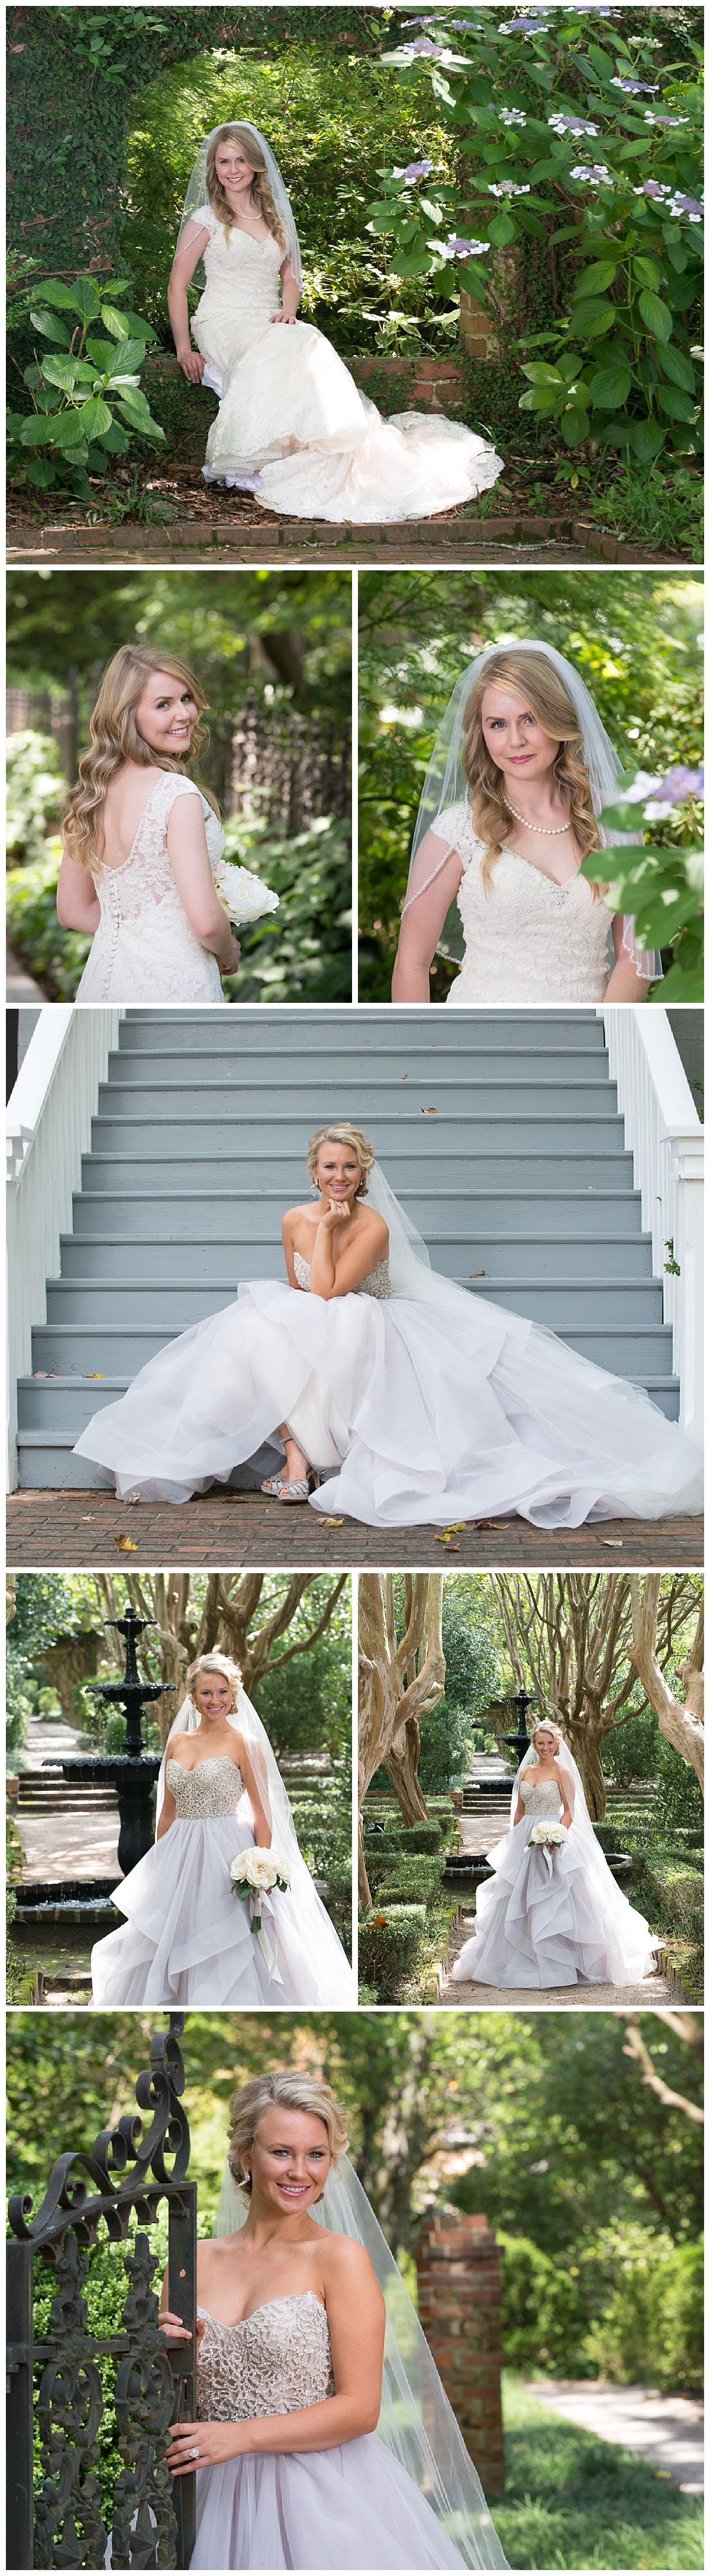 Governor's mansion and Lace House bridal portrait